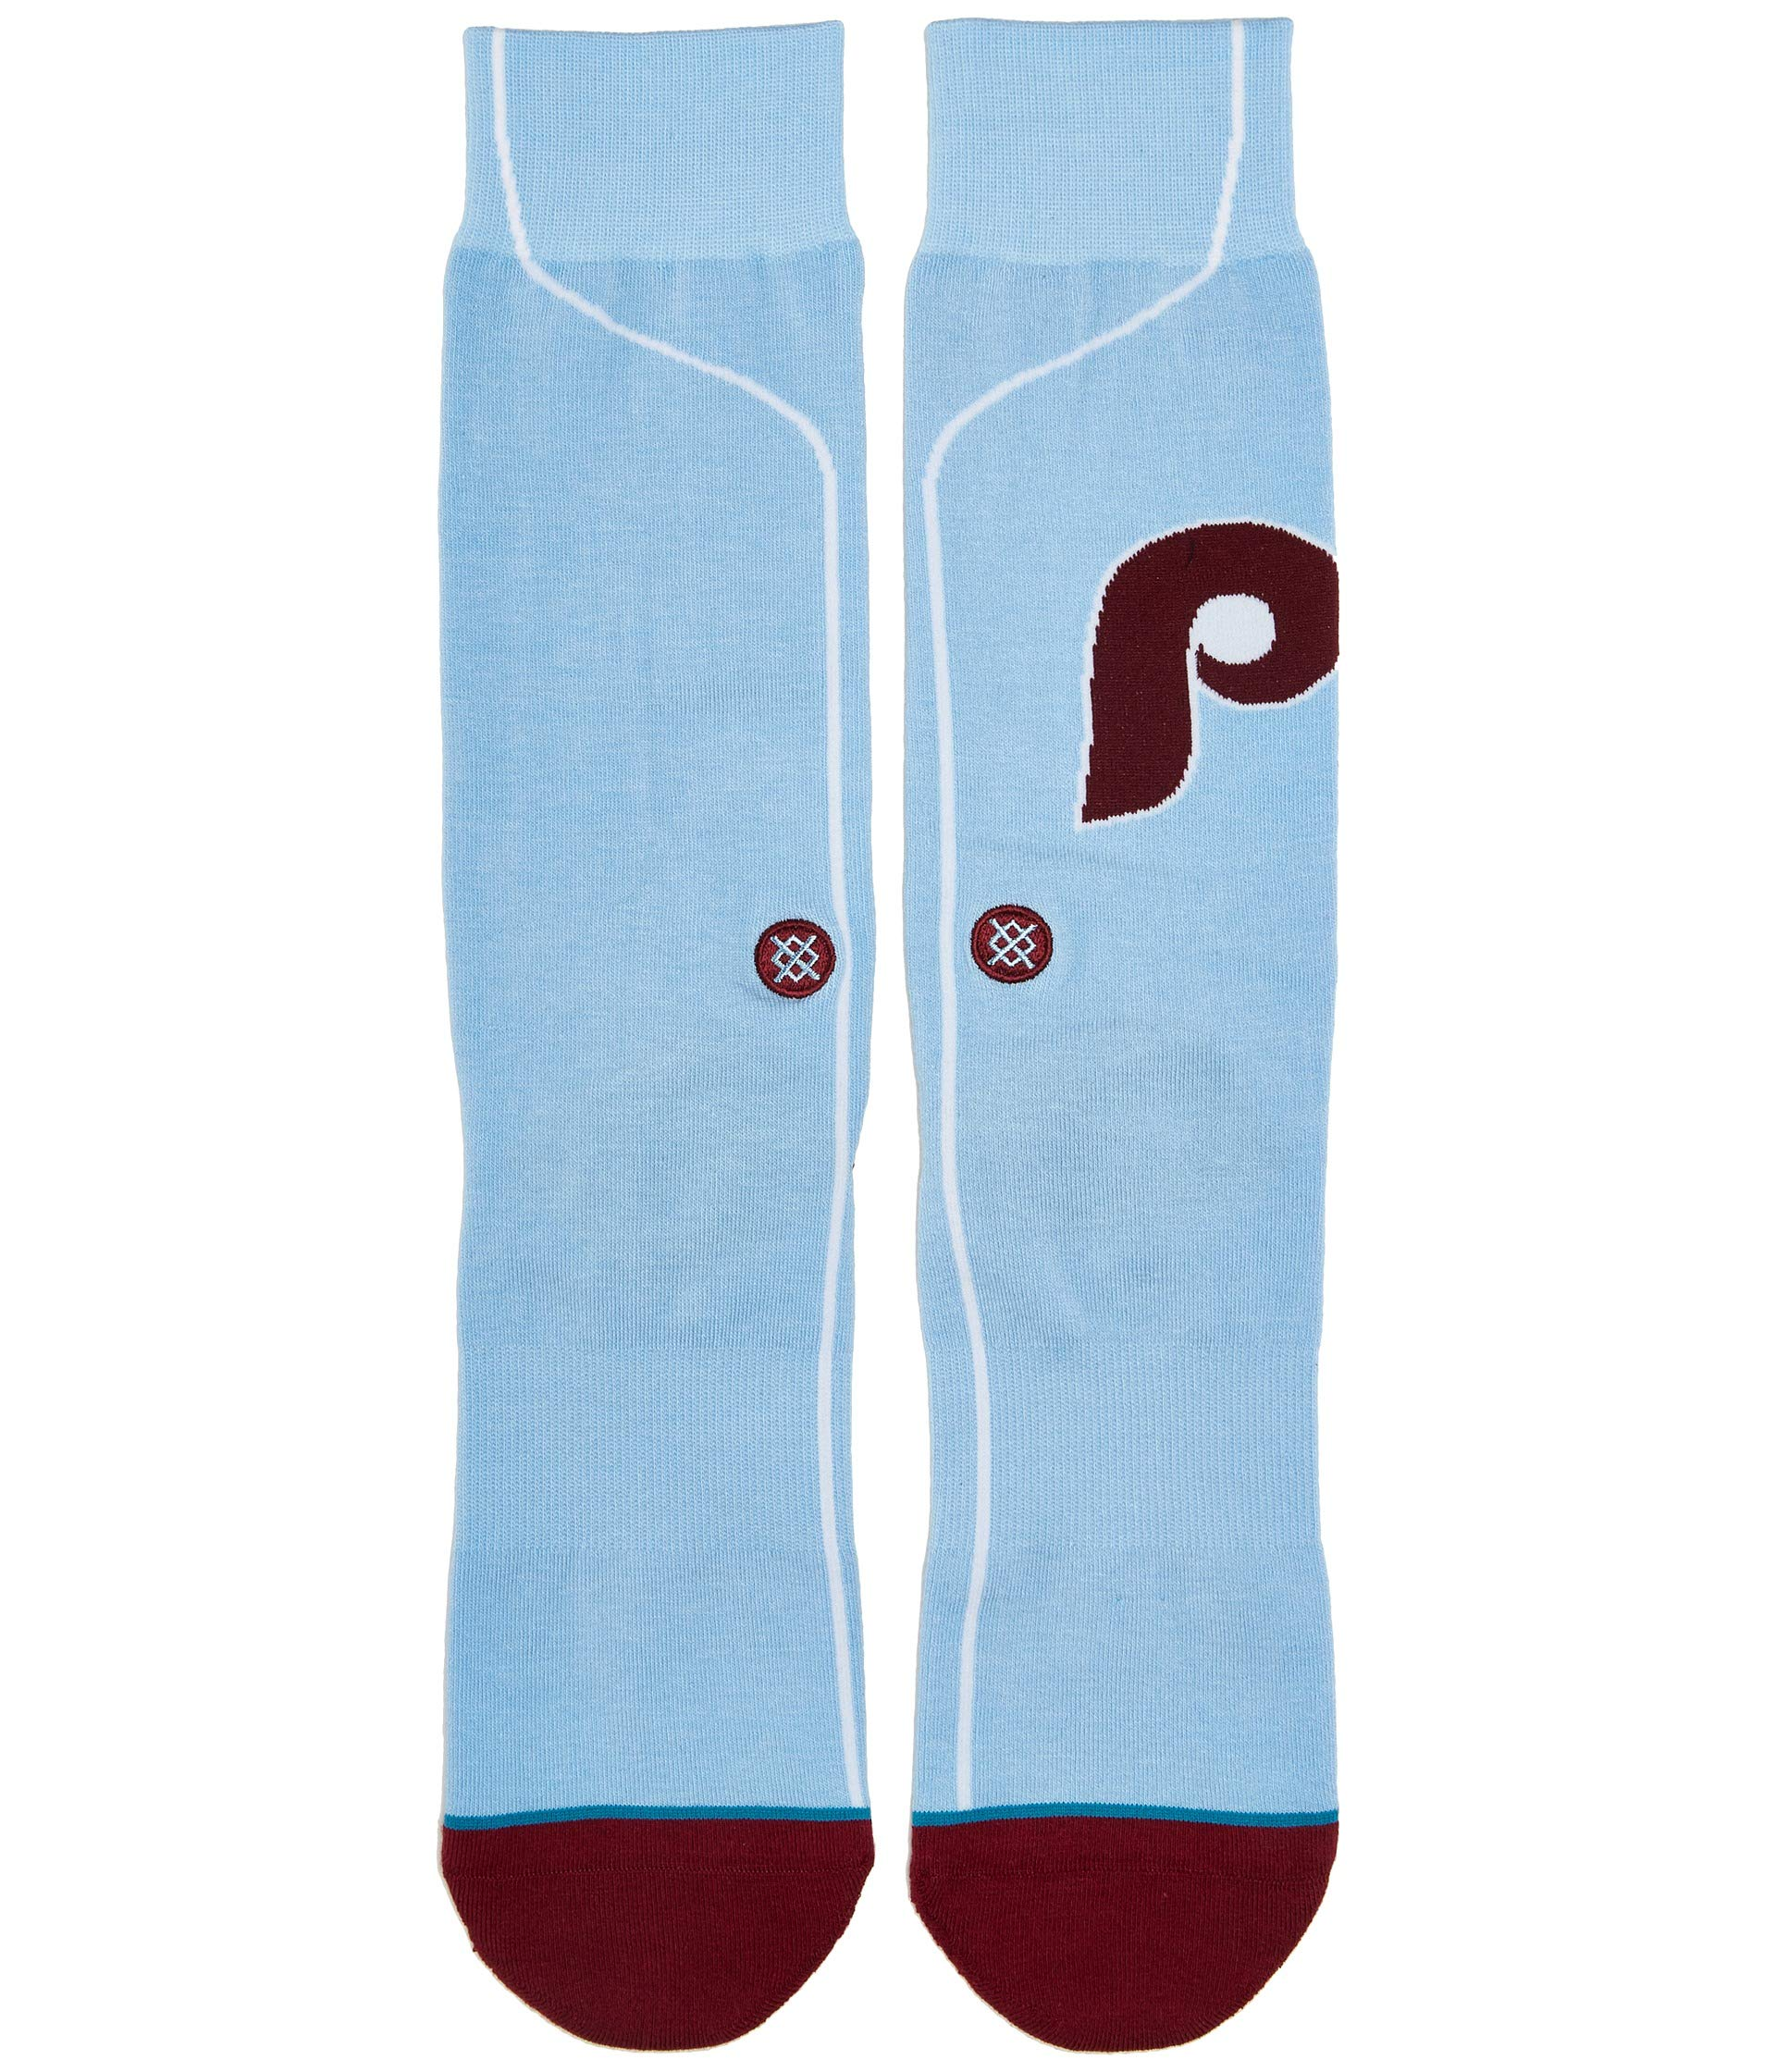 1975 Blue Stance Phillies Road Road 1975 Stance Blue Phillies Stance 1975 Road Blue Phillies Ig7nAq